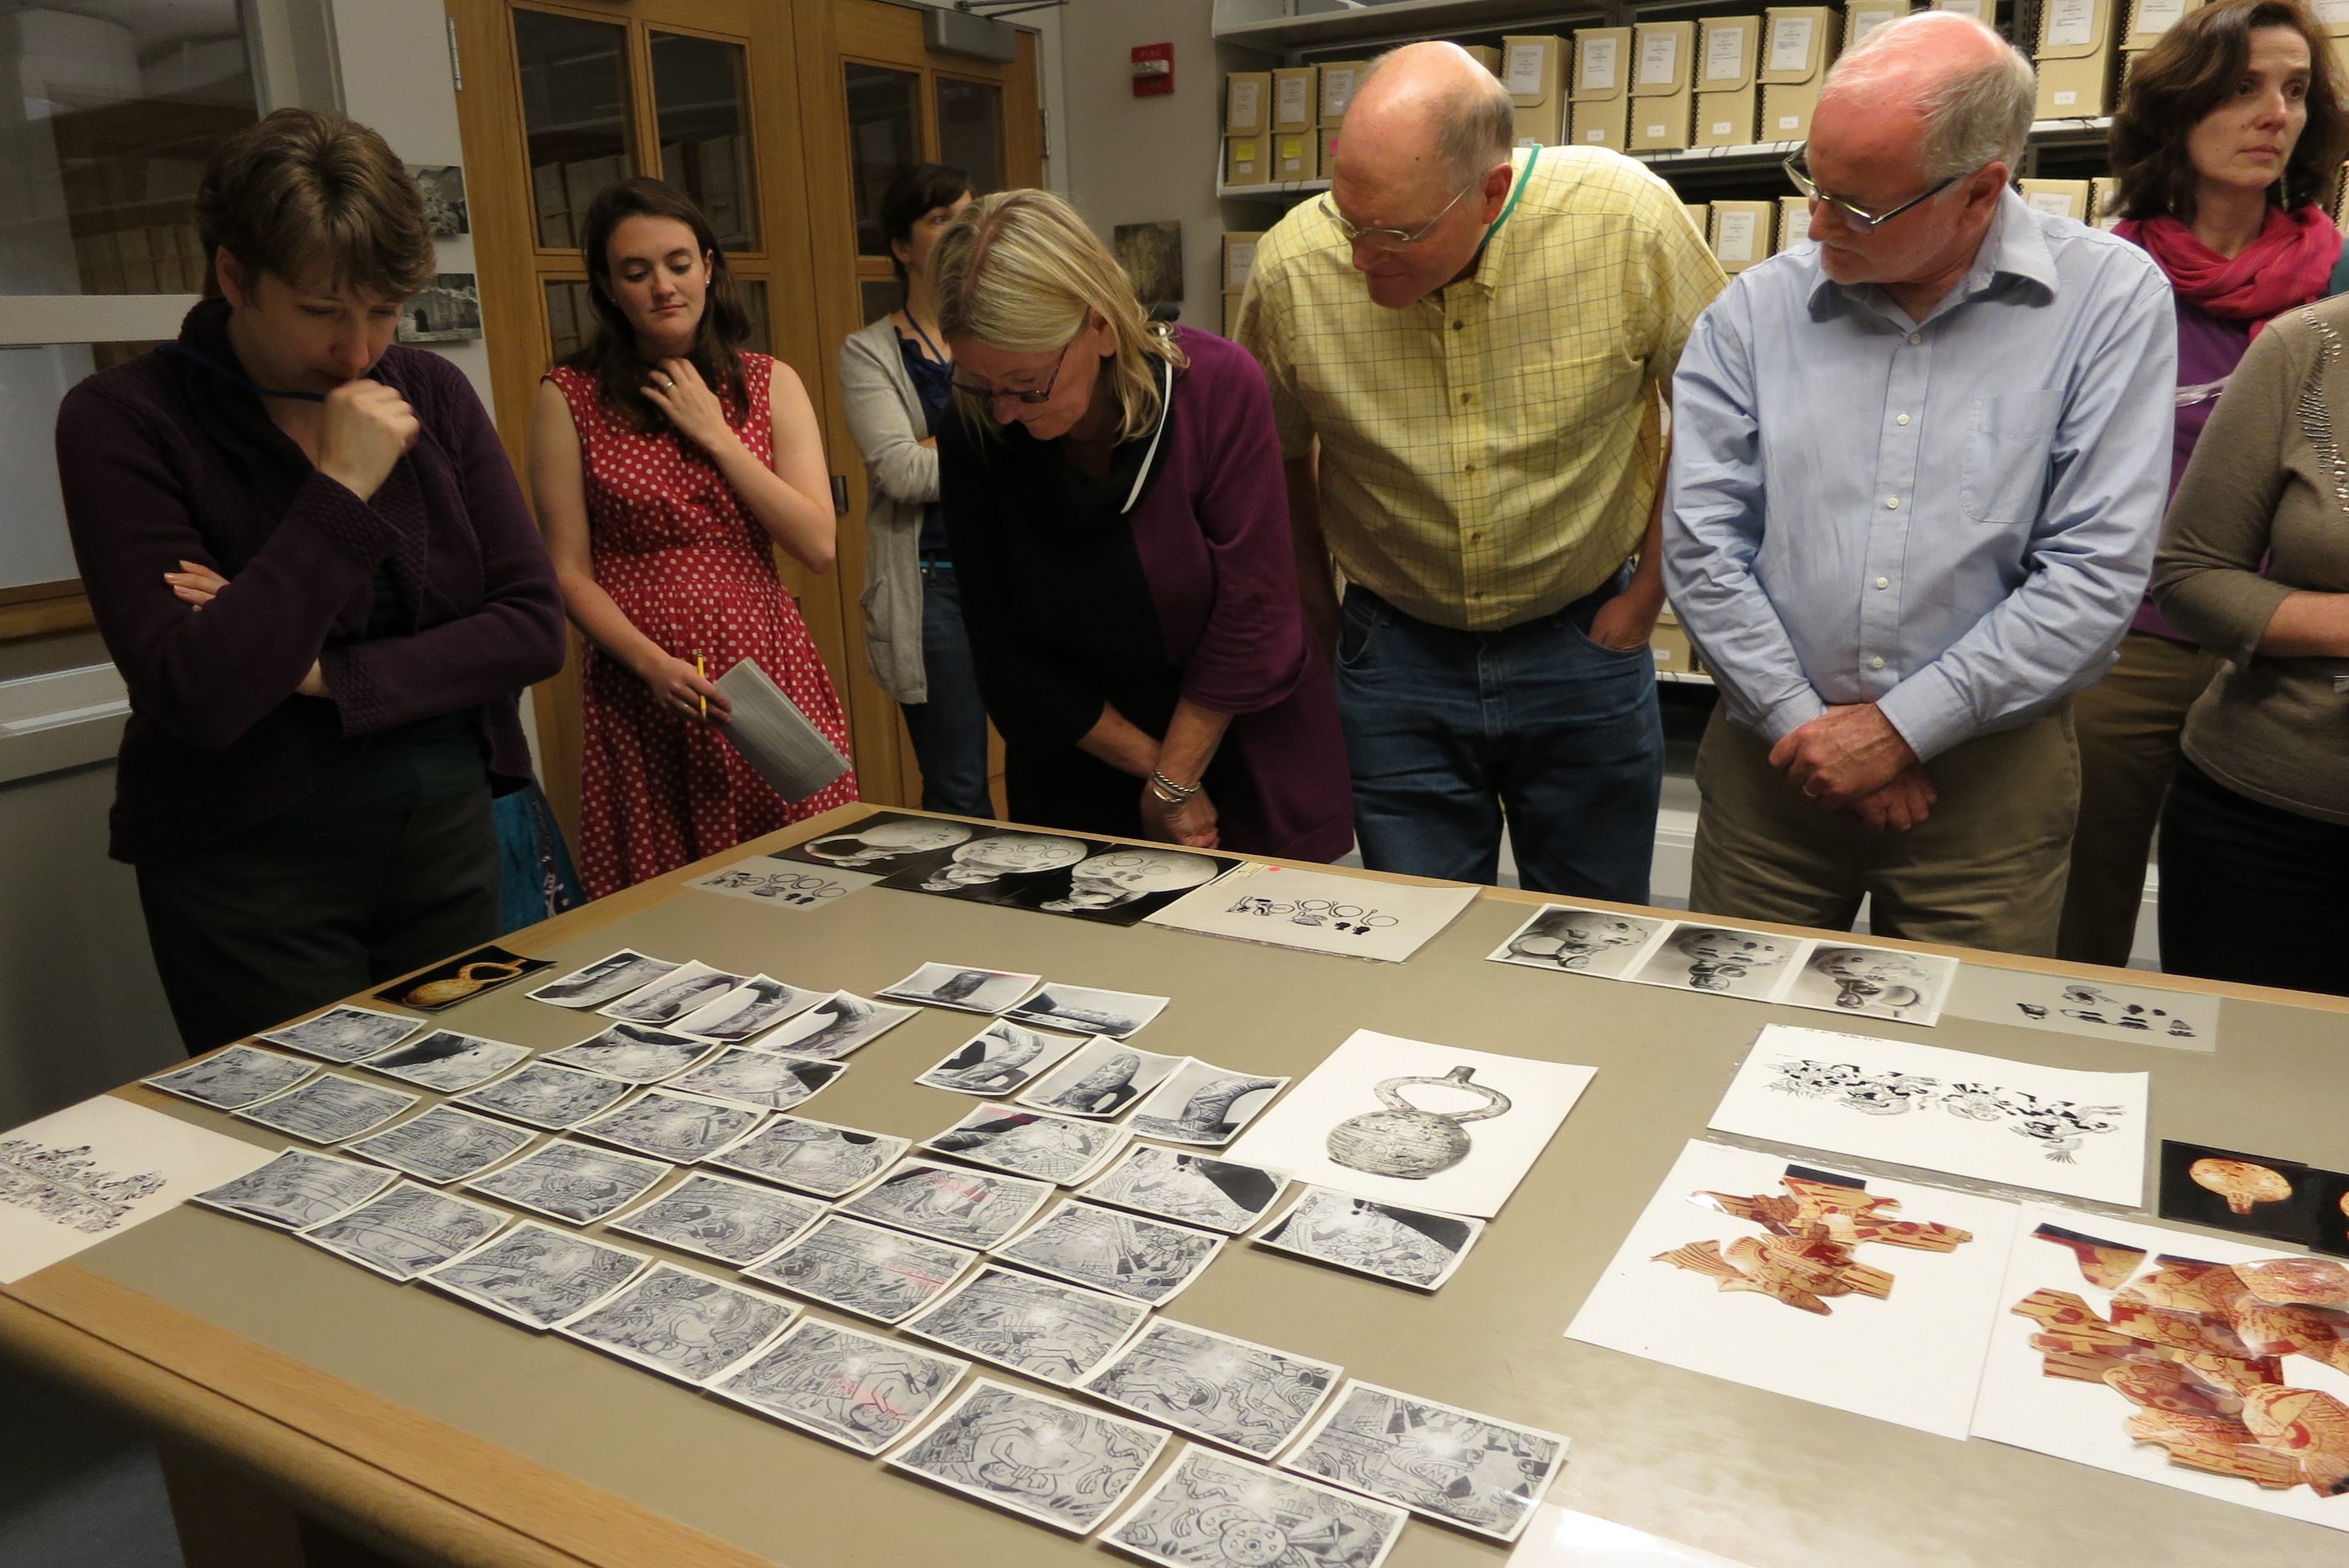 Dumbarton Oaks staff and Fellows examining the Donnan and McClelland Moche Archive in the Image Collections and Fieldwork Archives